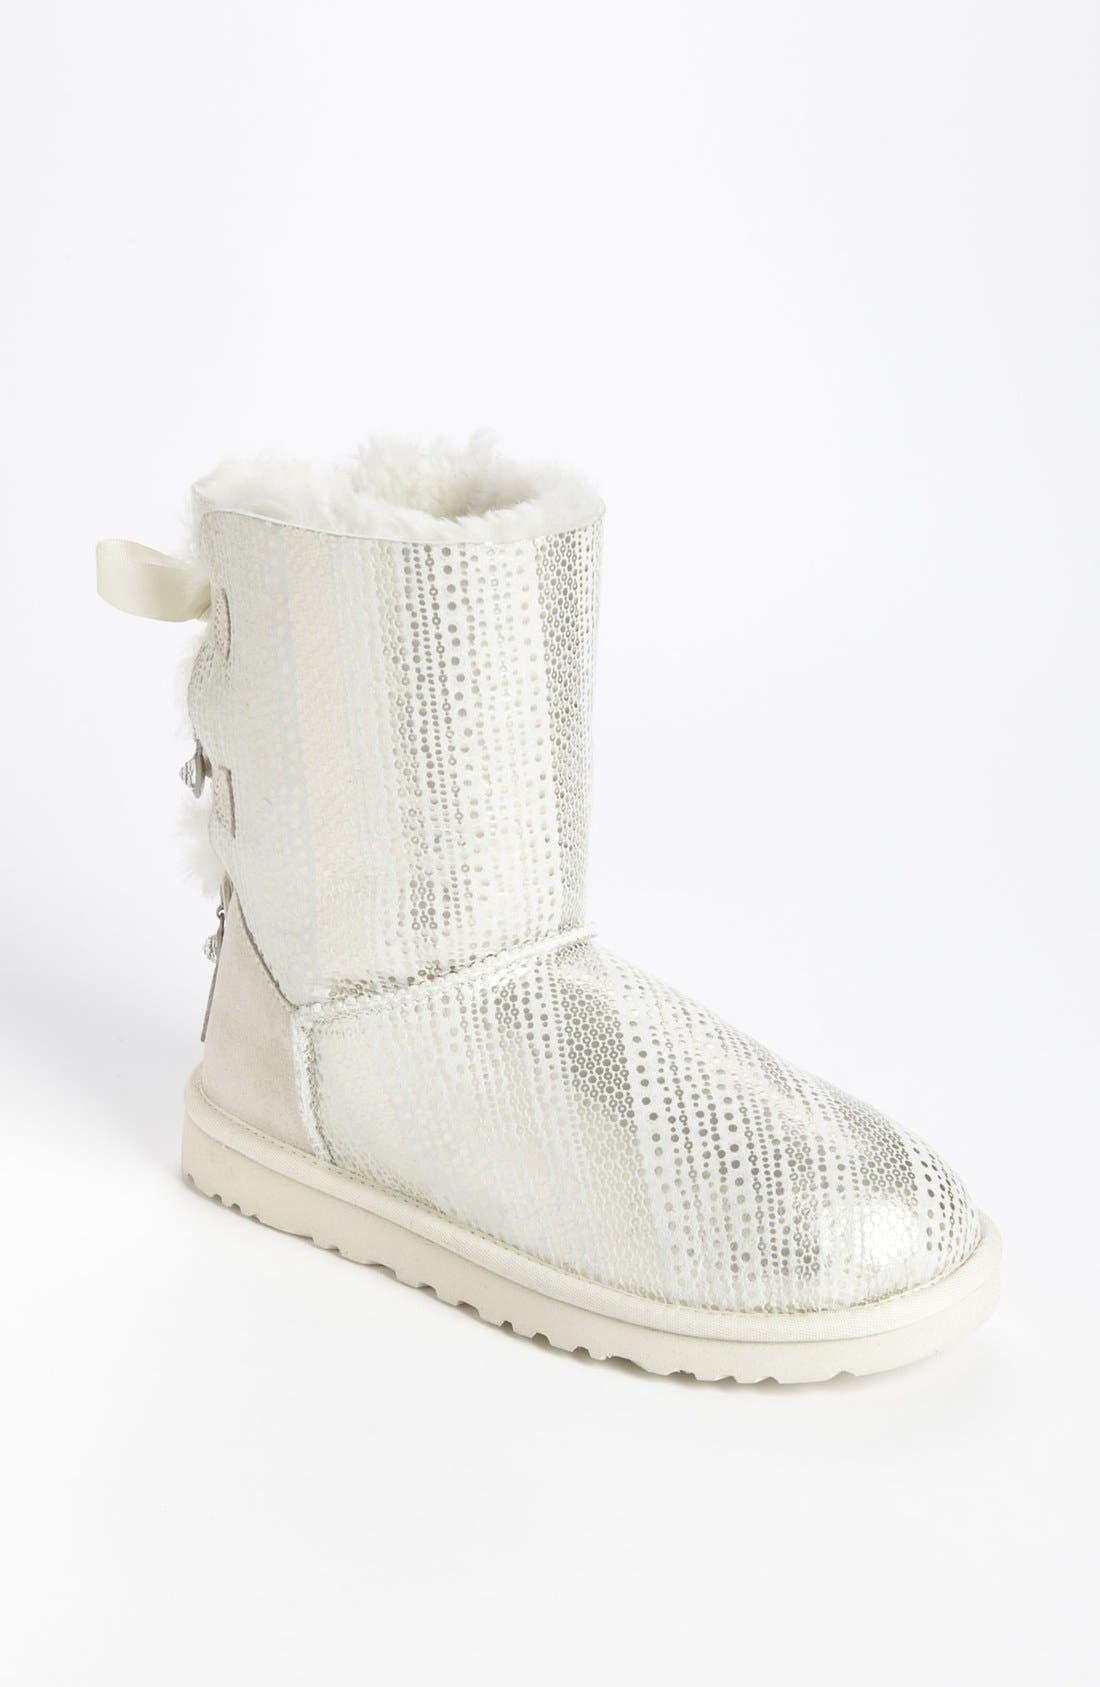 Alternate Image 1 Selected - UGG® 'Bailey Bow Bling' Boot (Women)